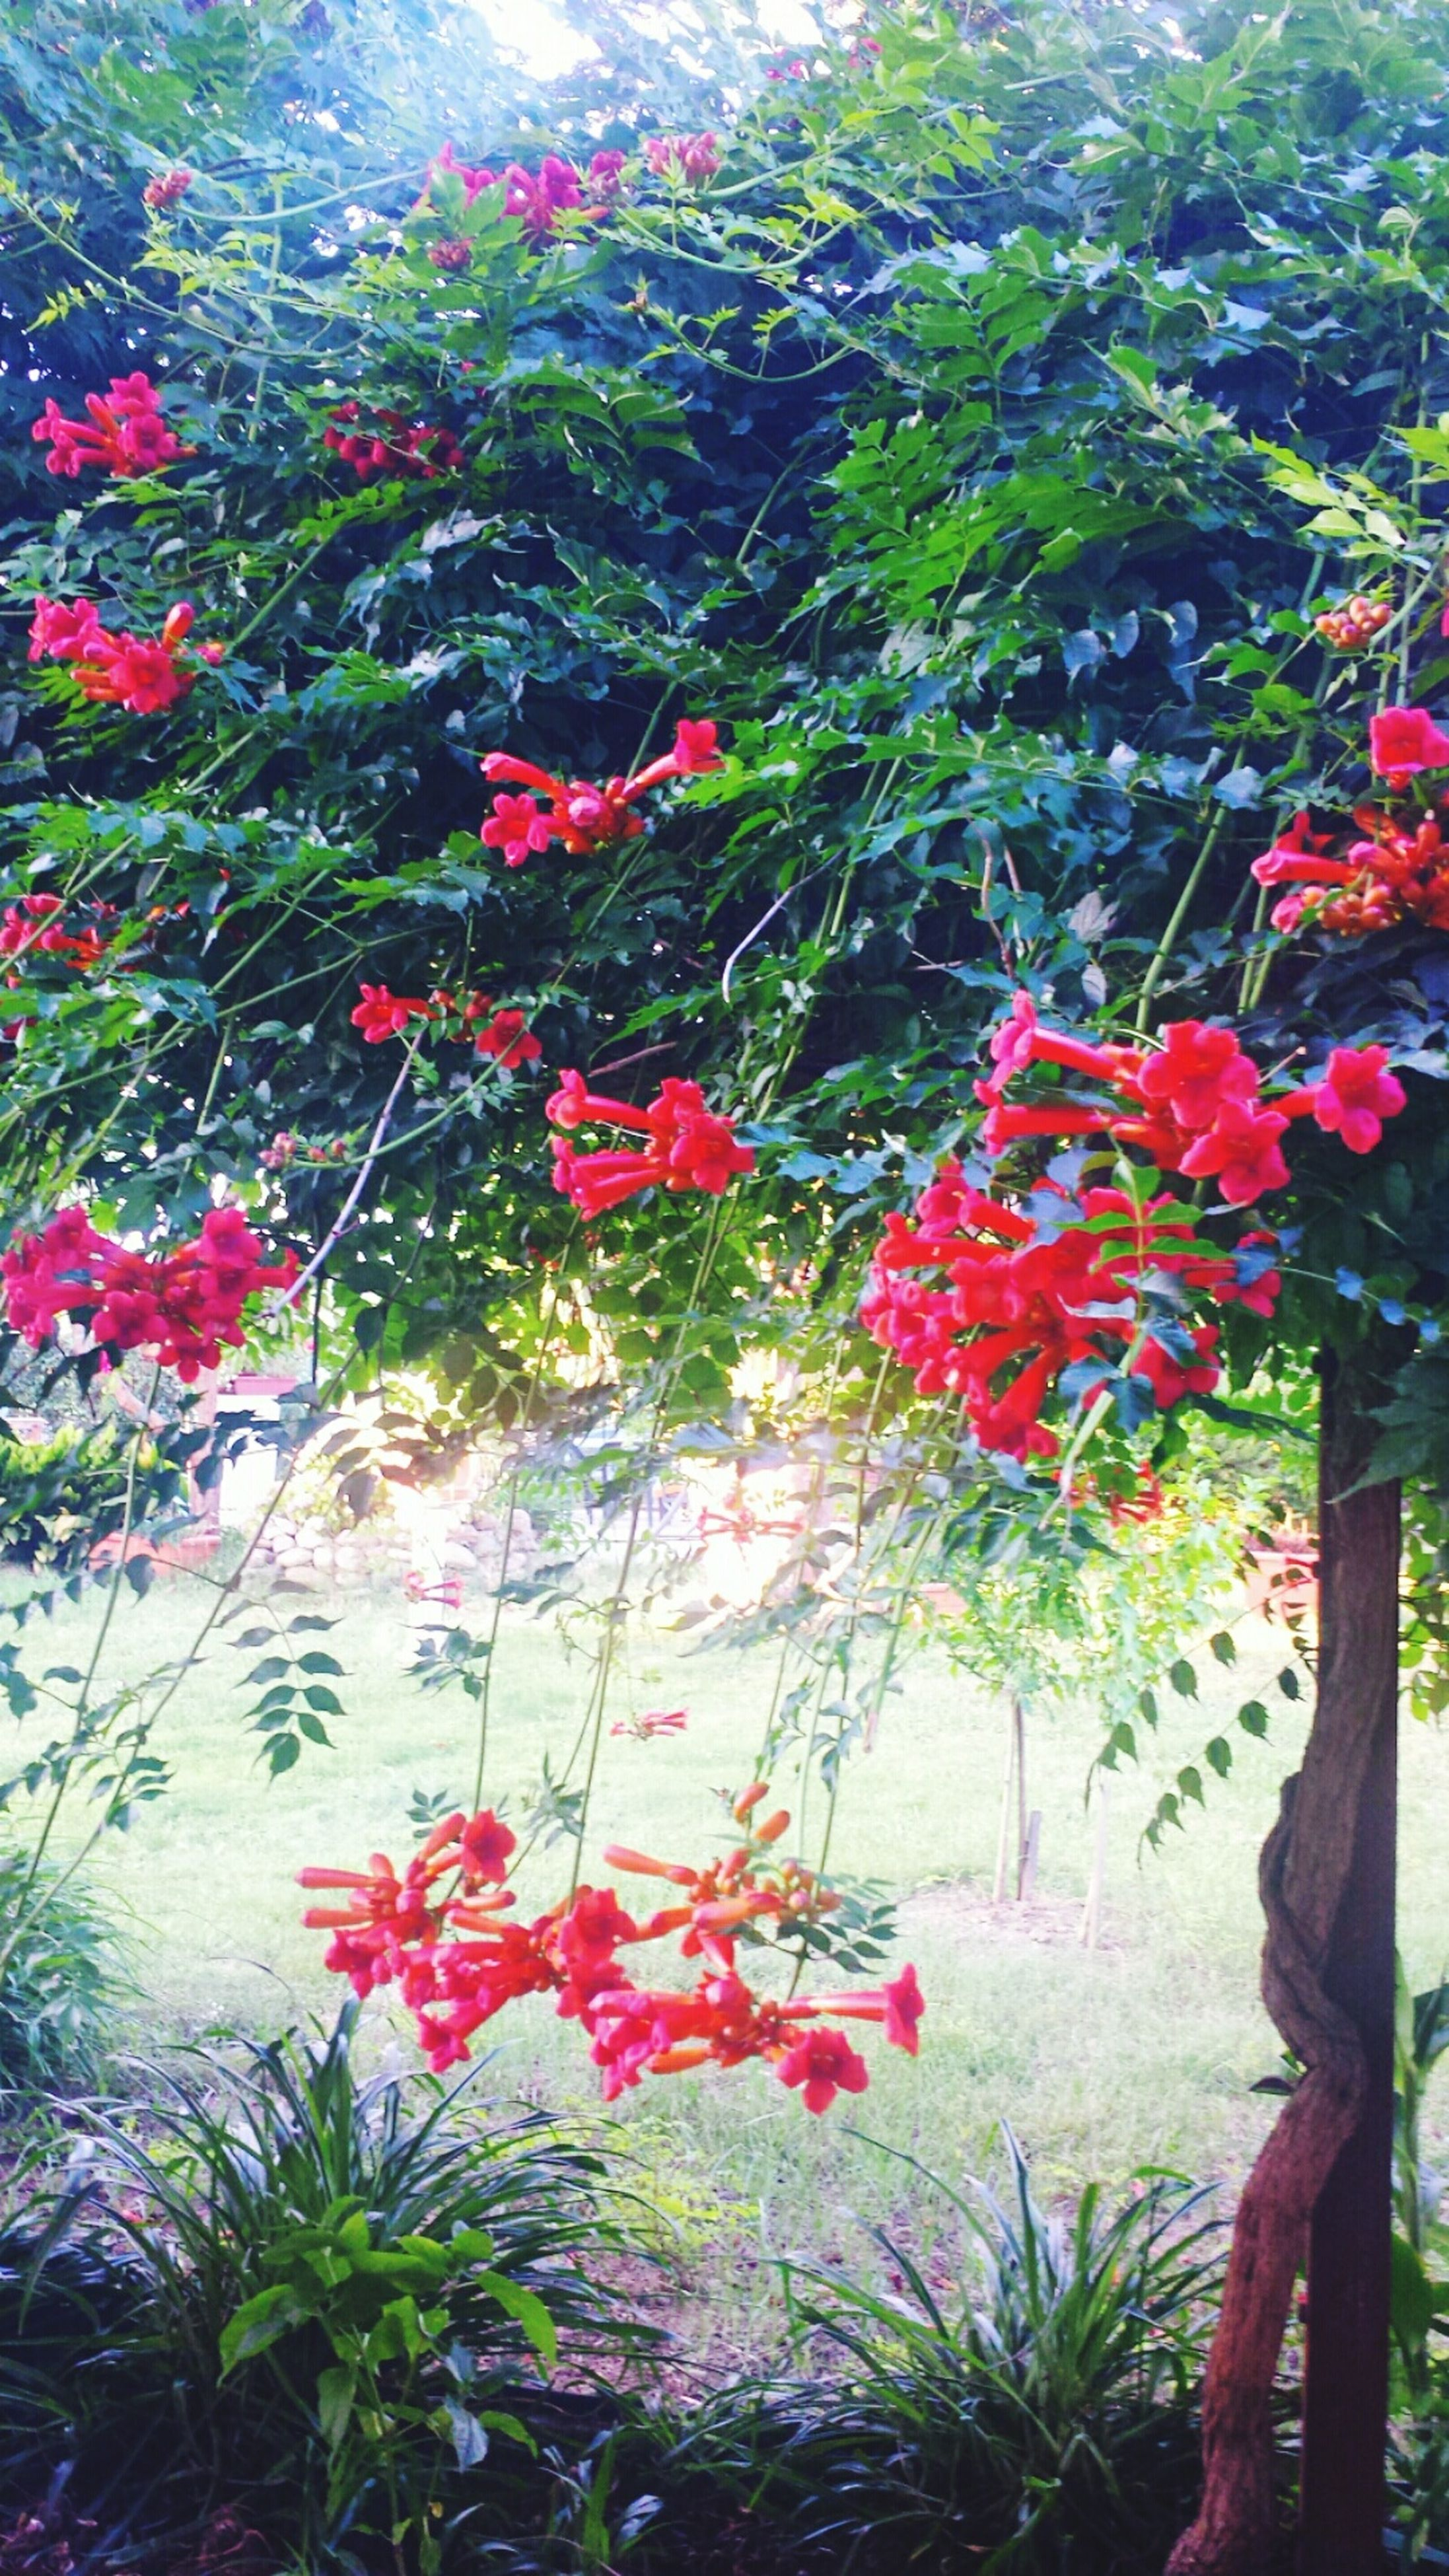 flower, freshness, growth, red, plant, beauty in nature, fragility, nature, petal, blooming, in bloom, tree, blossom, high angle view, day, outdoors, sunlight, pink color, growing, green color